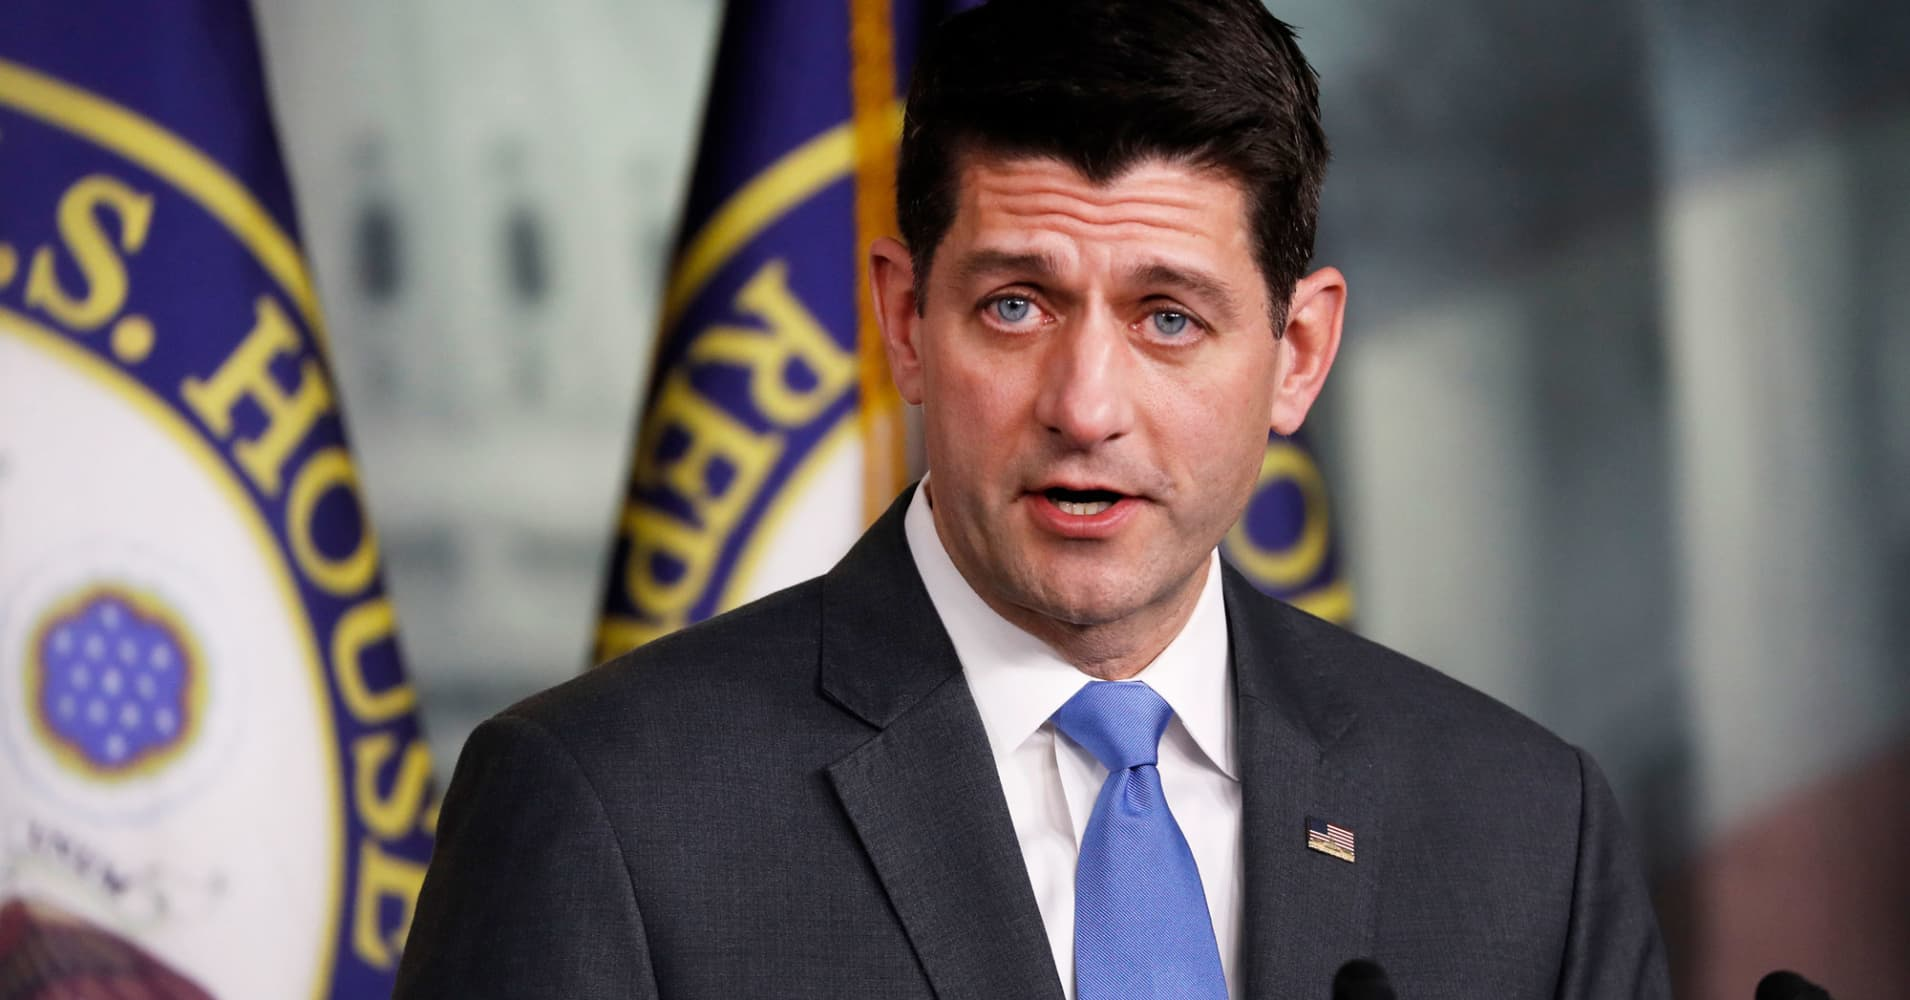 Paul Ryan could get a pension of $84,930 a year—here's how that compares to most Americans